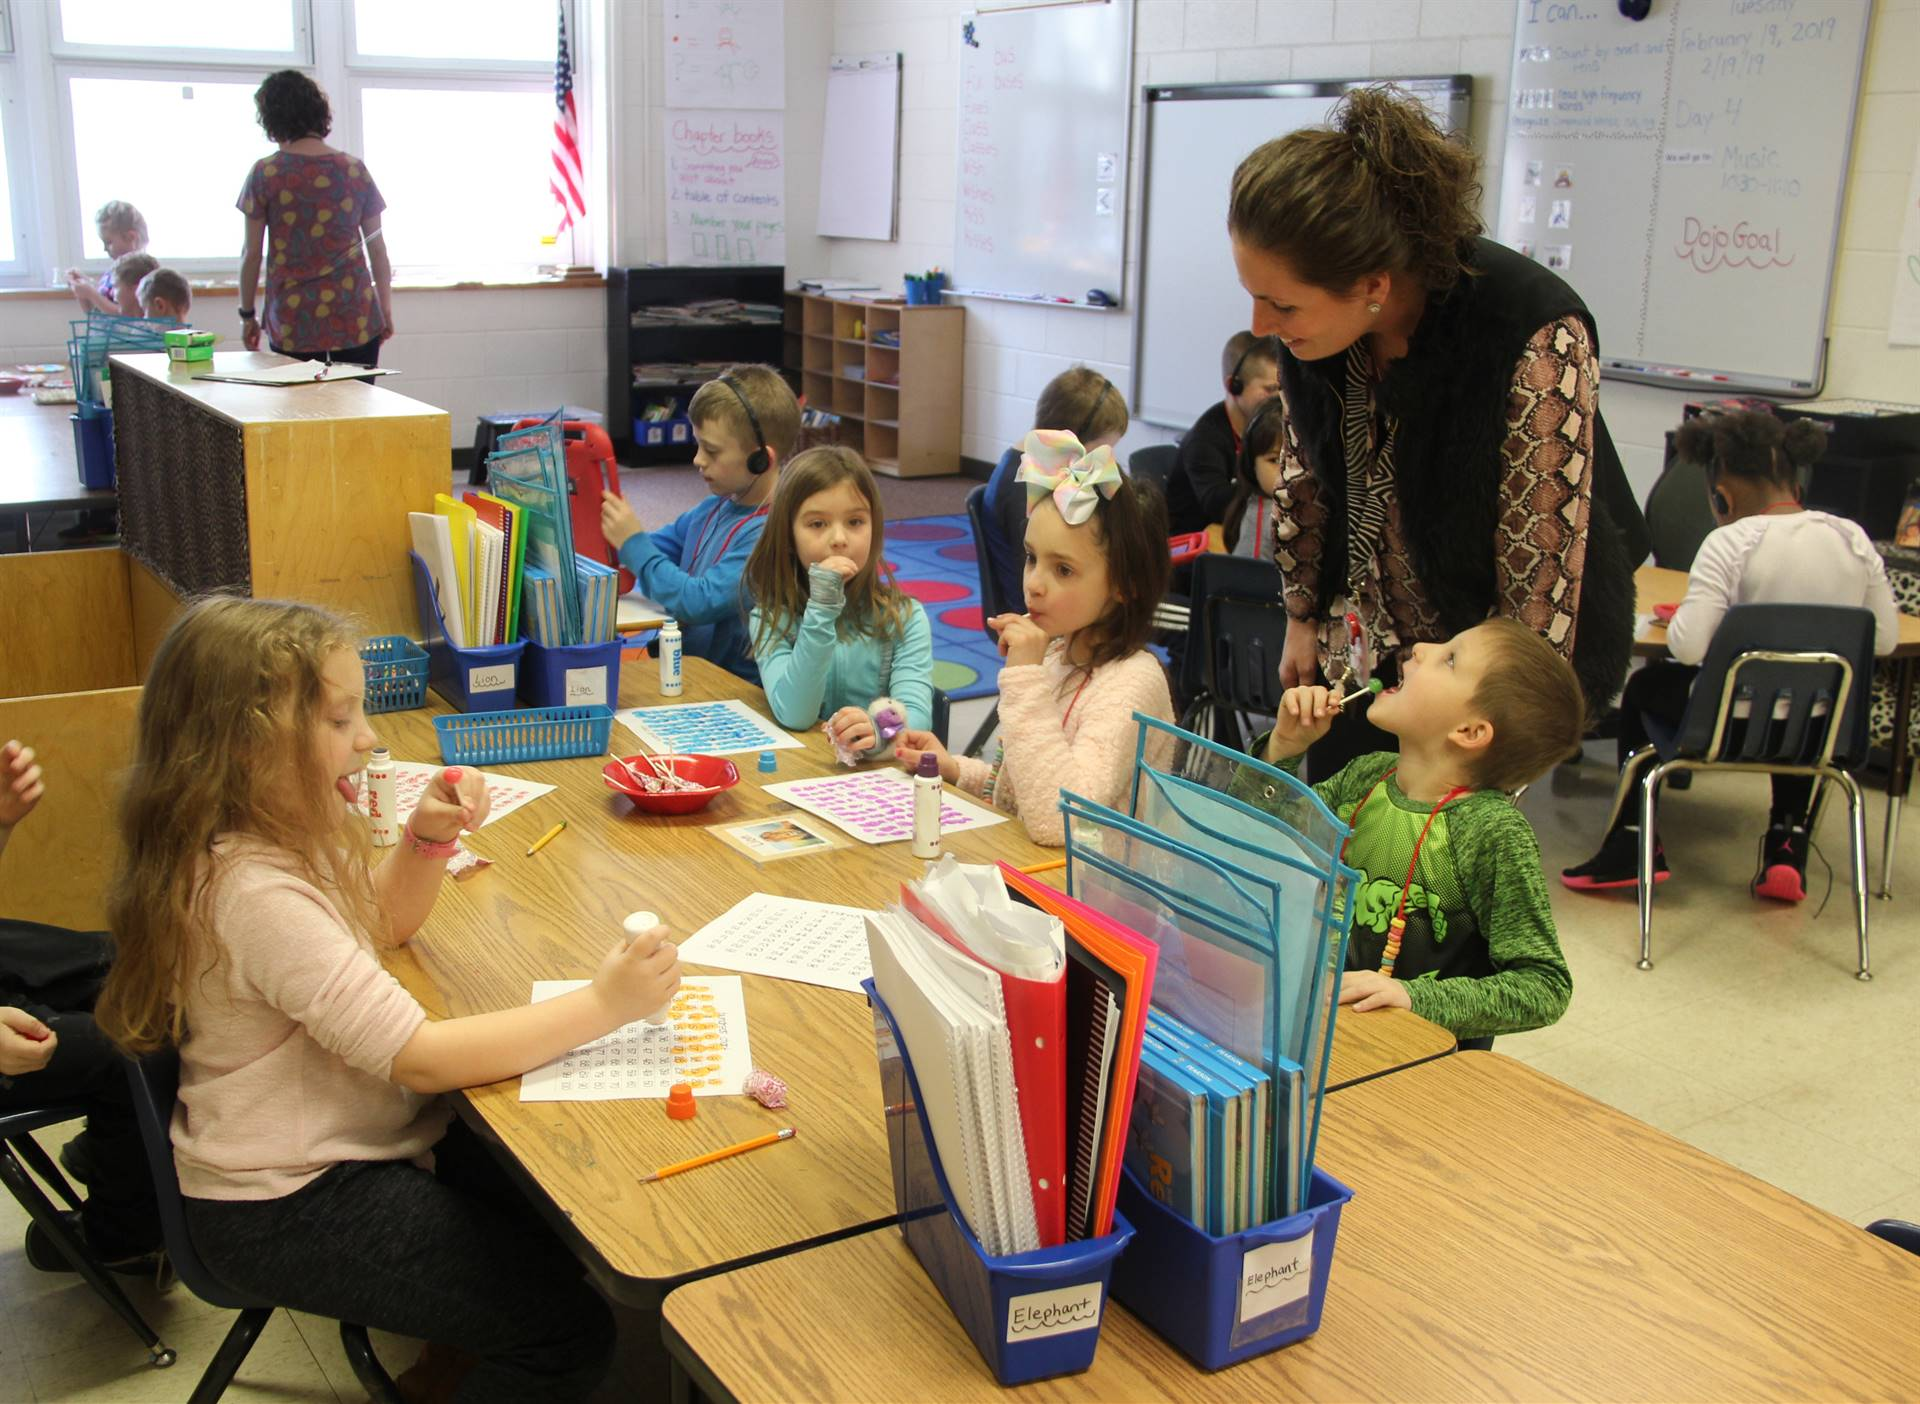 students and teacher working on 100 days of school activity in classroom